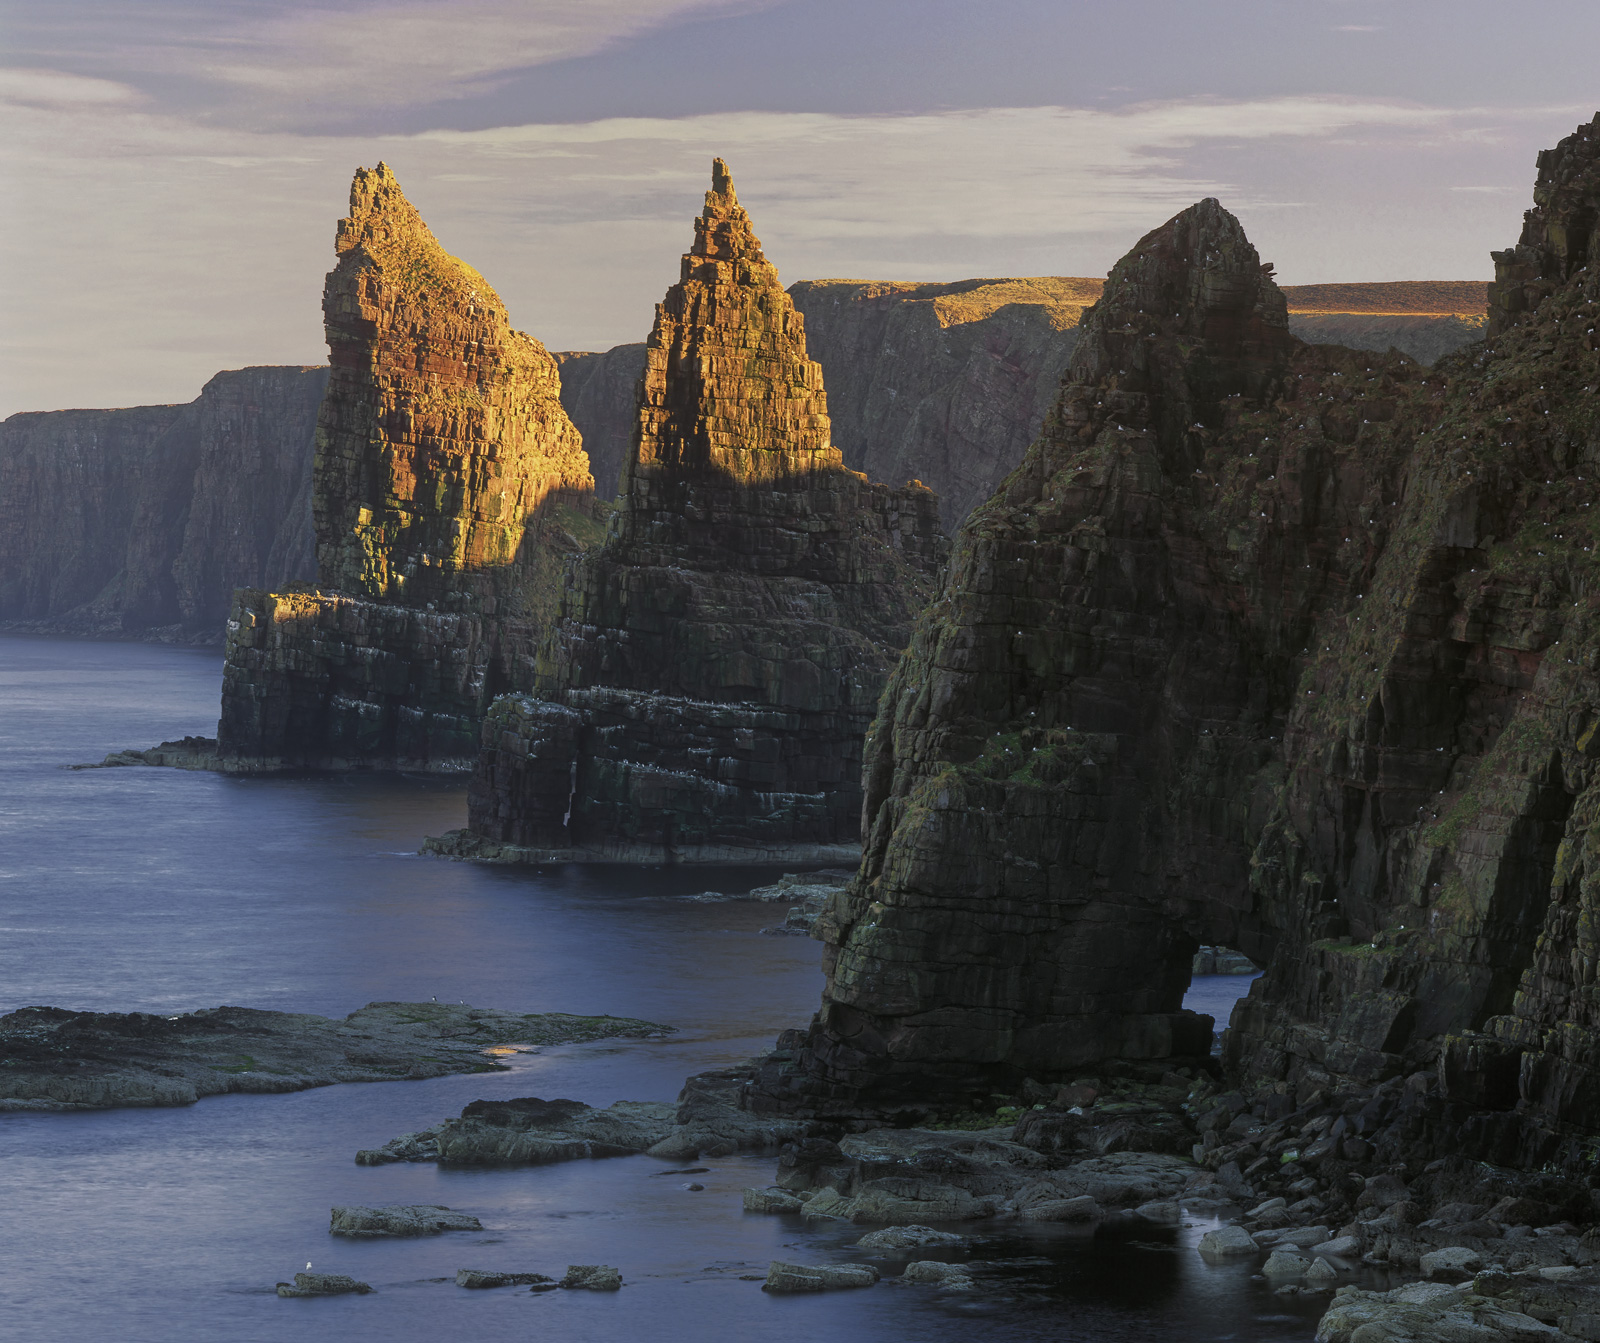 Stacks of Duncansby, Duncansby Head, Caithness, Scotland, coastal, viewpoint, compressed, majesty, stacks, sea, gulls, g, photo